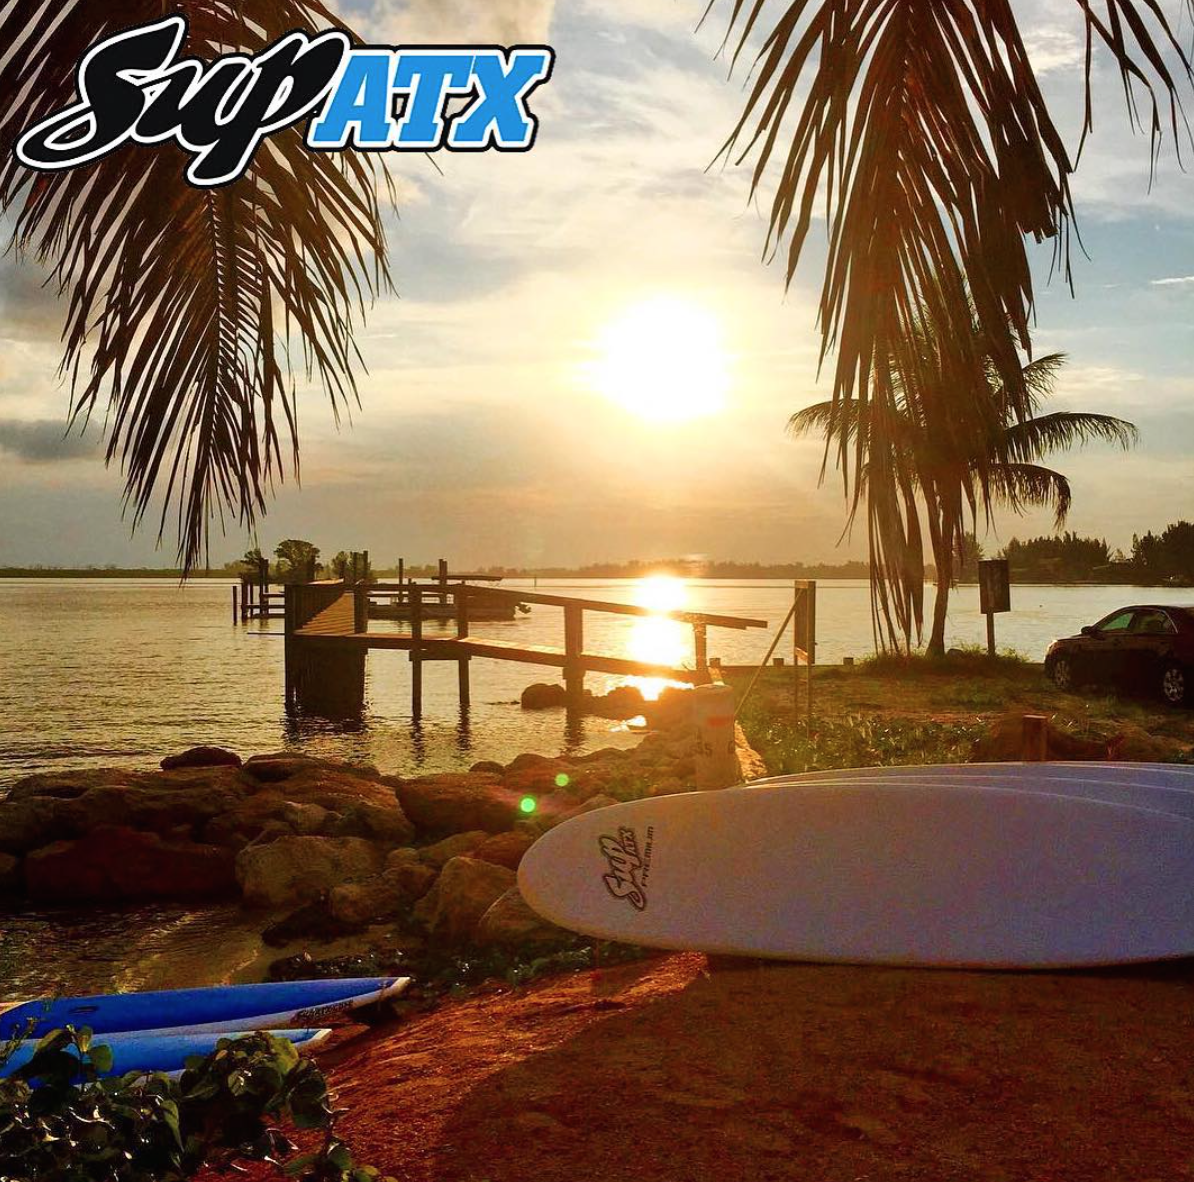 Design Your Own Exterior: Idea By SUP ATX On SUP ATX Paddle Boards